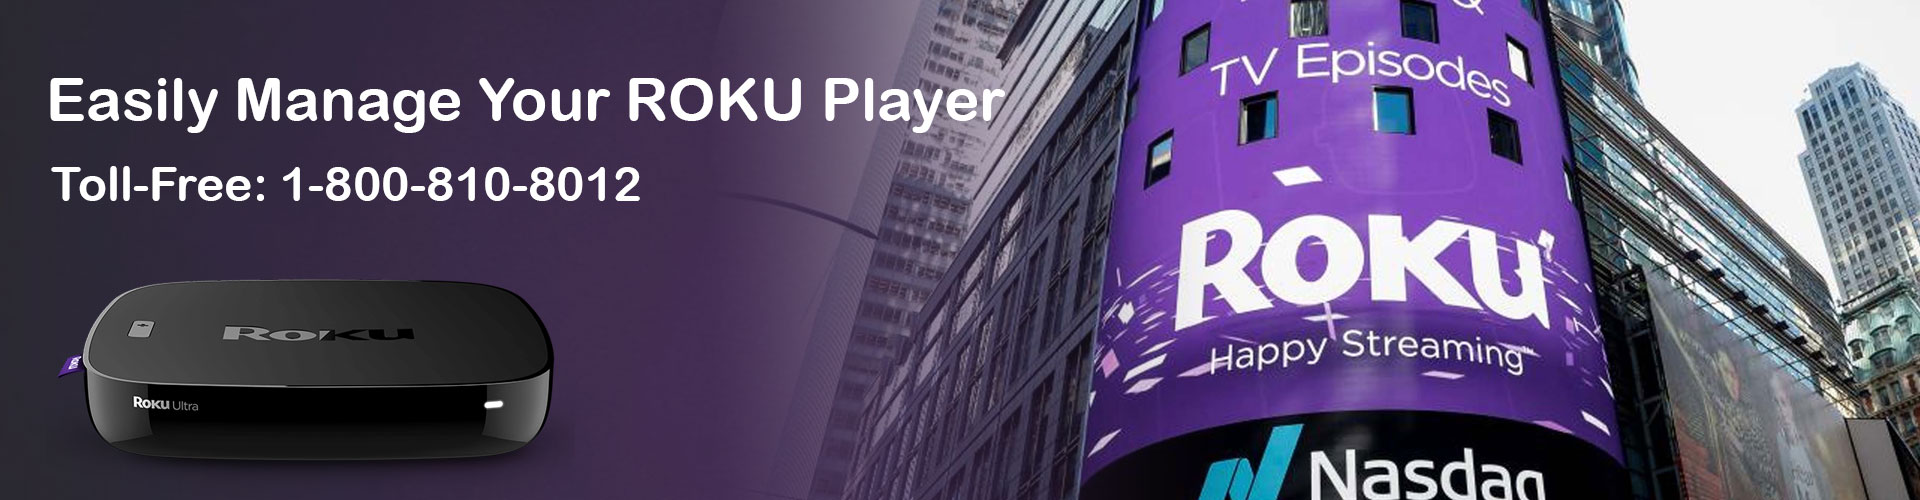 roku com/link | www roku com/link | Roku Login | set up a roku account